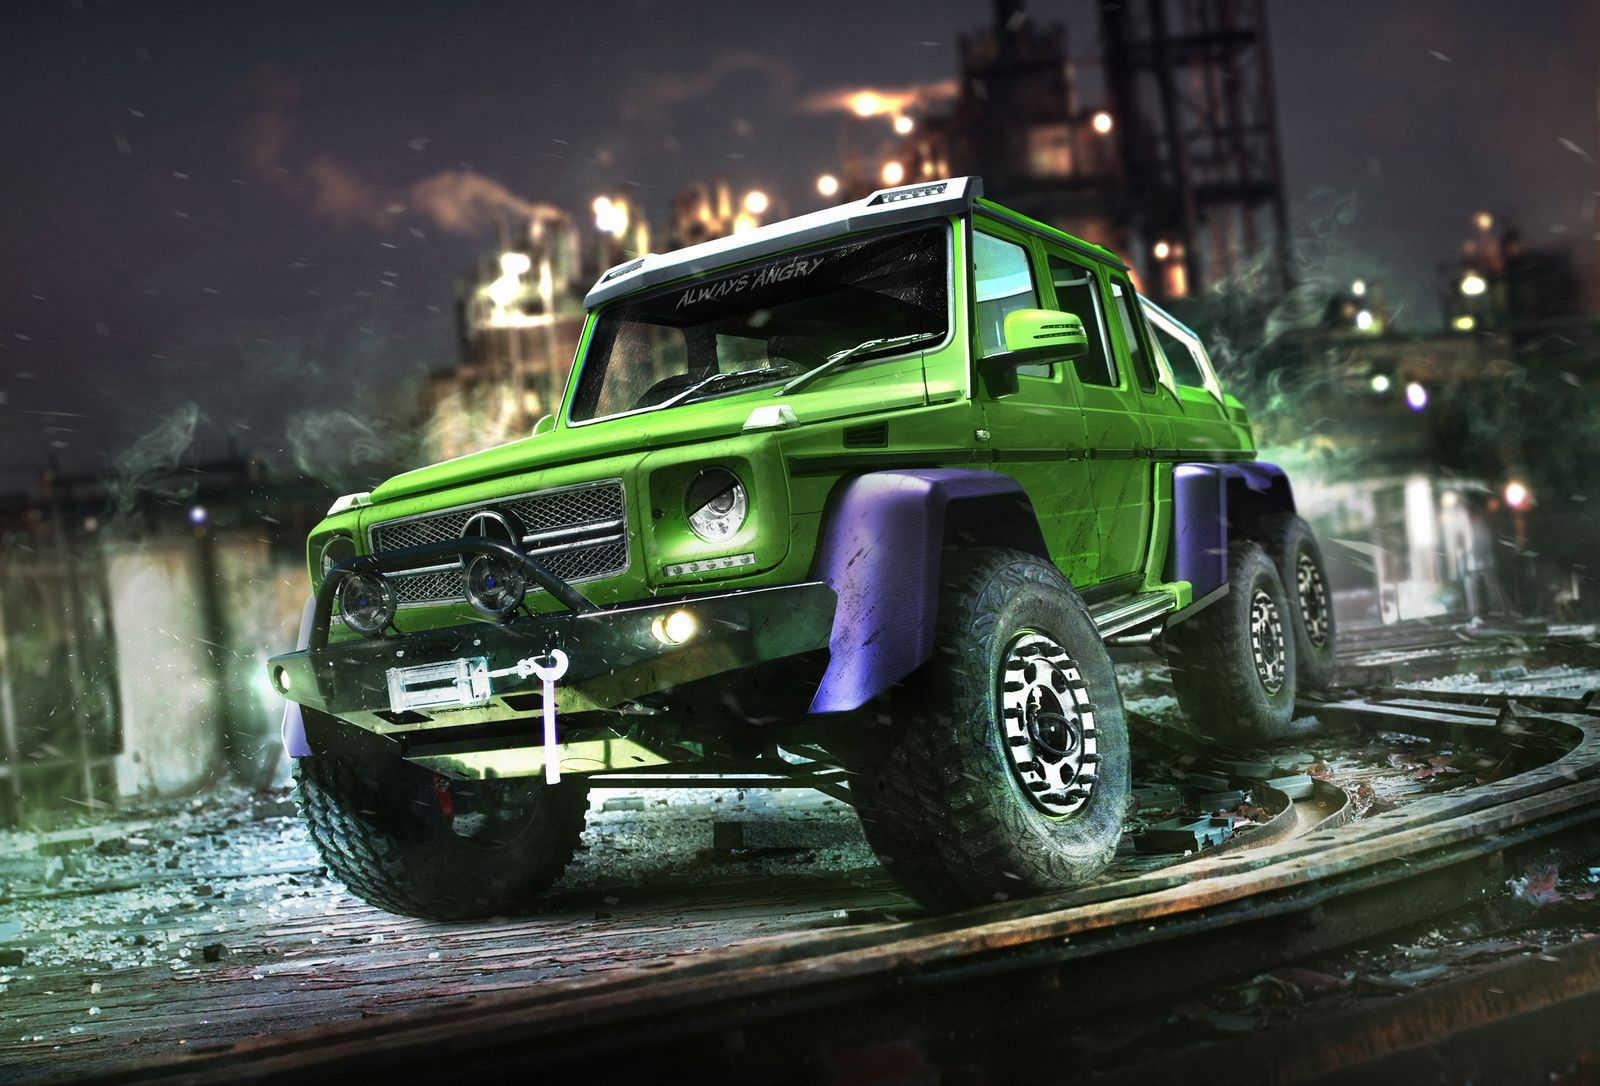 Hulk Mercedes G 63 6x6 Legendary Green Superhero Found